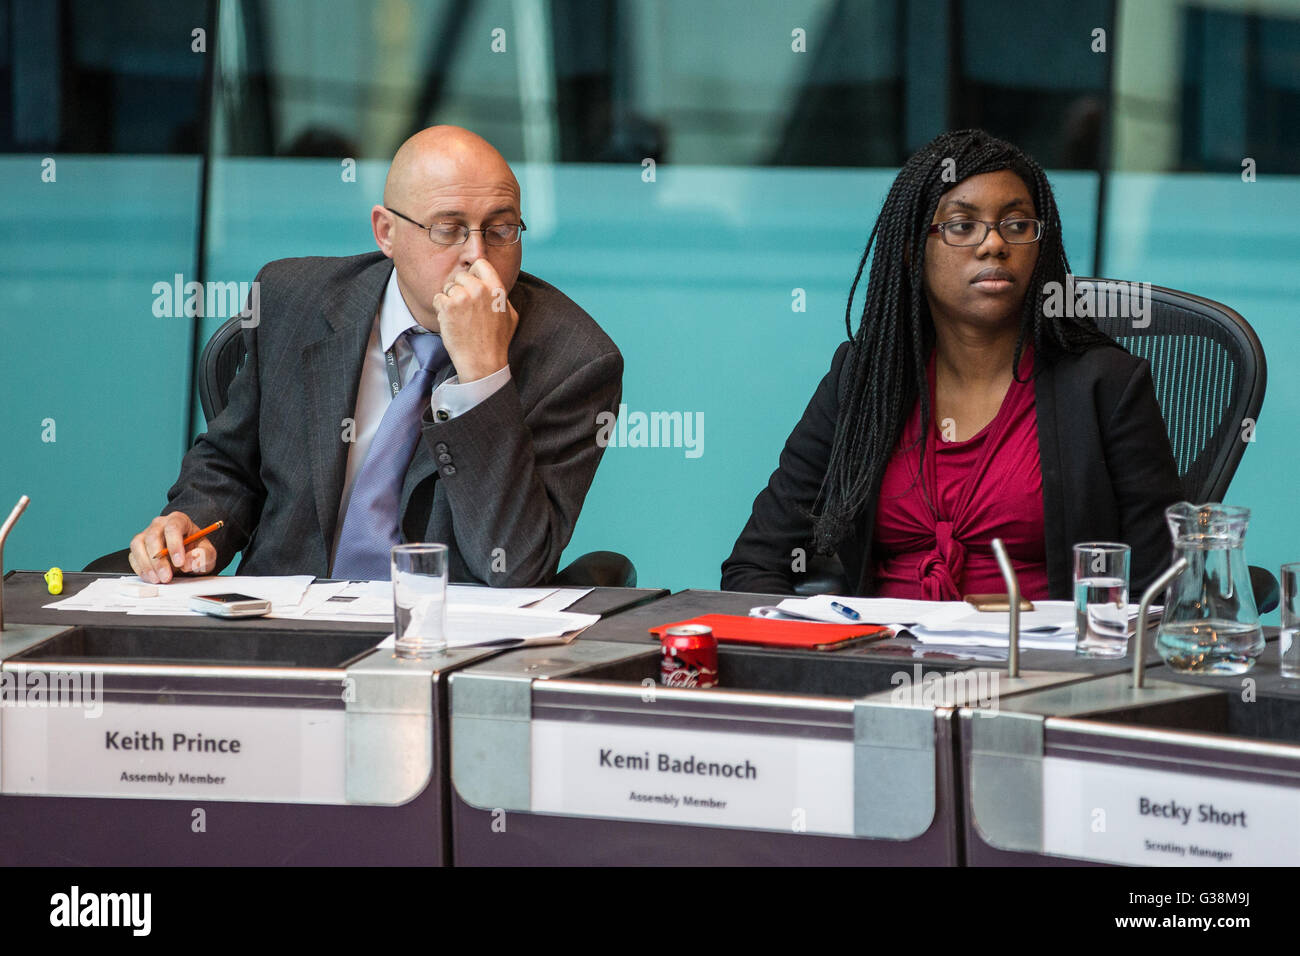 London, UK. 9th June, 2016. Conservative London Assembly Members Keith Prince and Kemi Badenoch listen to a question - Stock Image